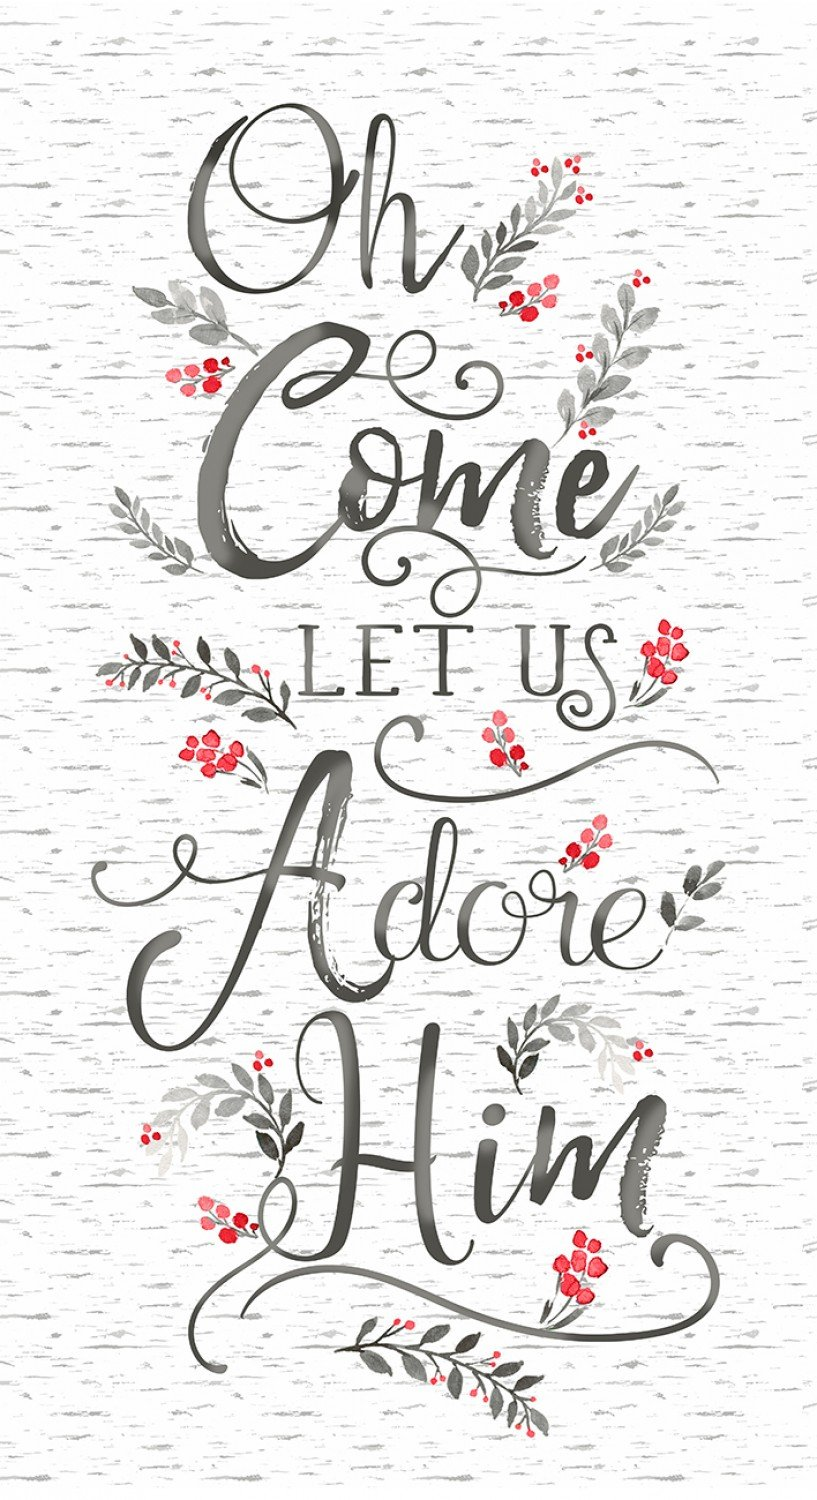 TT-Panel GC C7857 White - Oh Come Let Us Adore Him 24 Panel